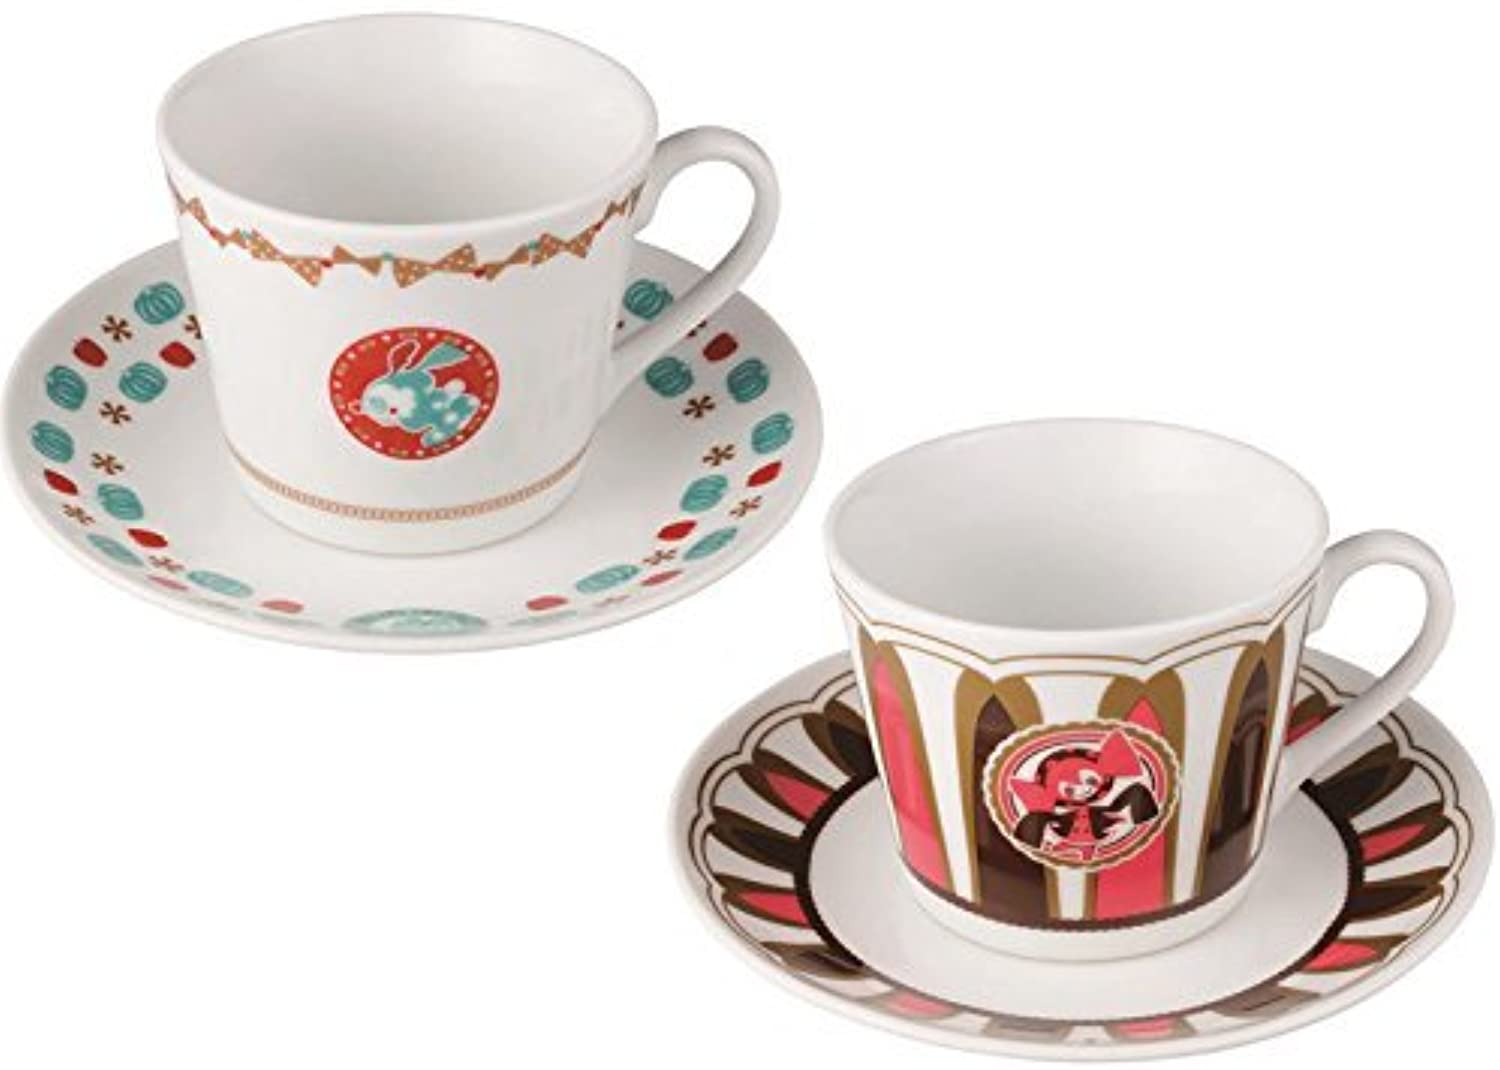 The most lottery Magical Girl Madoka Magica Magiccrafta ¢ G Award tea cup and saucer full two